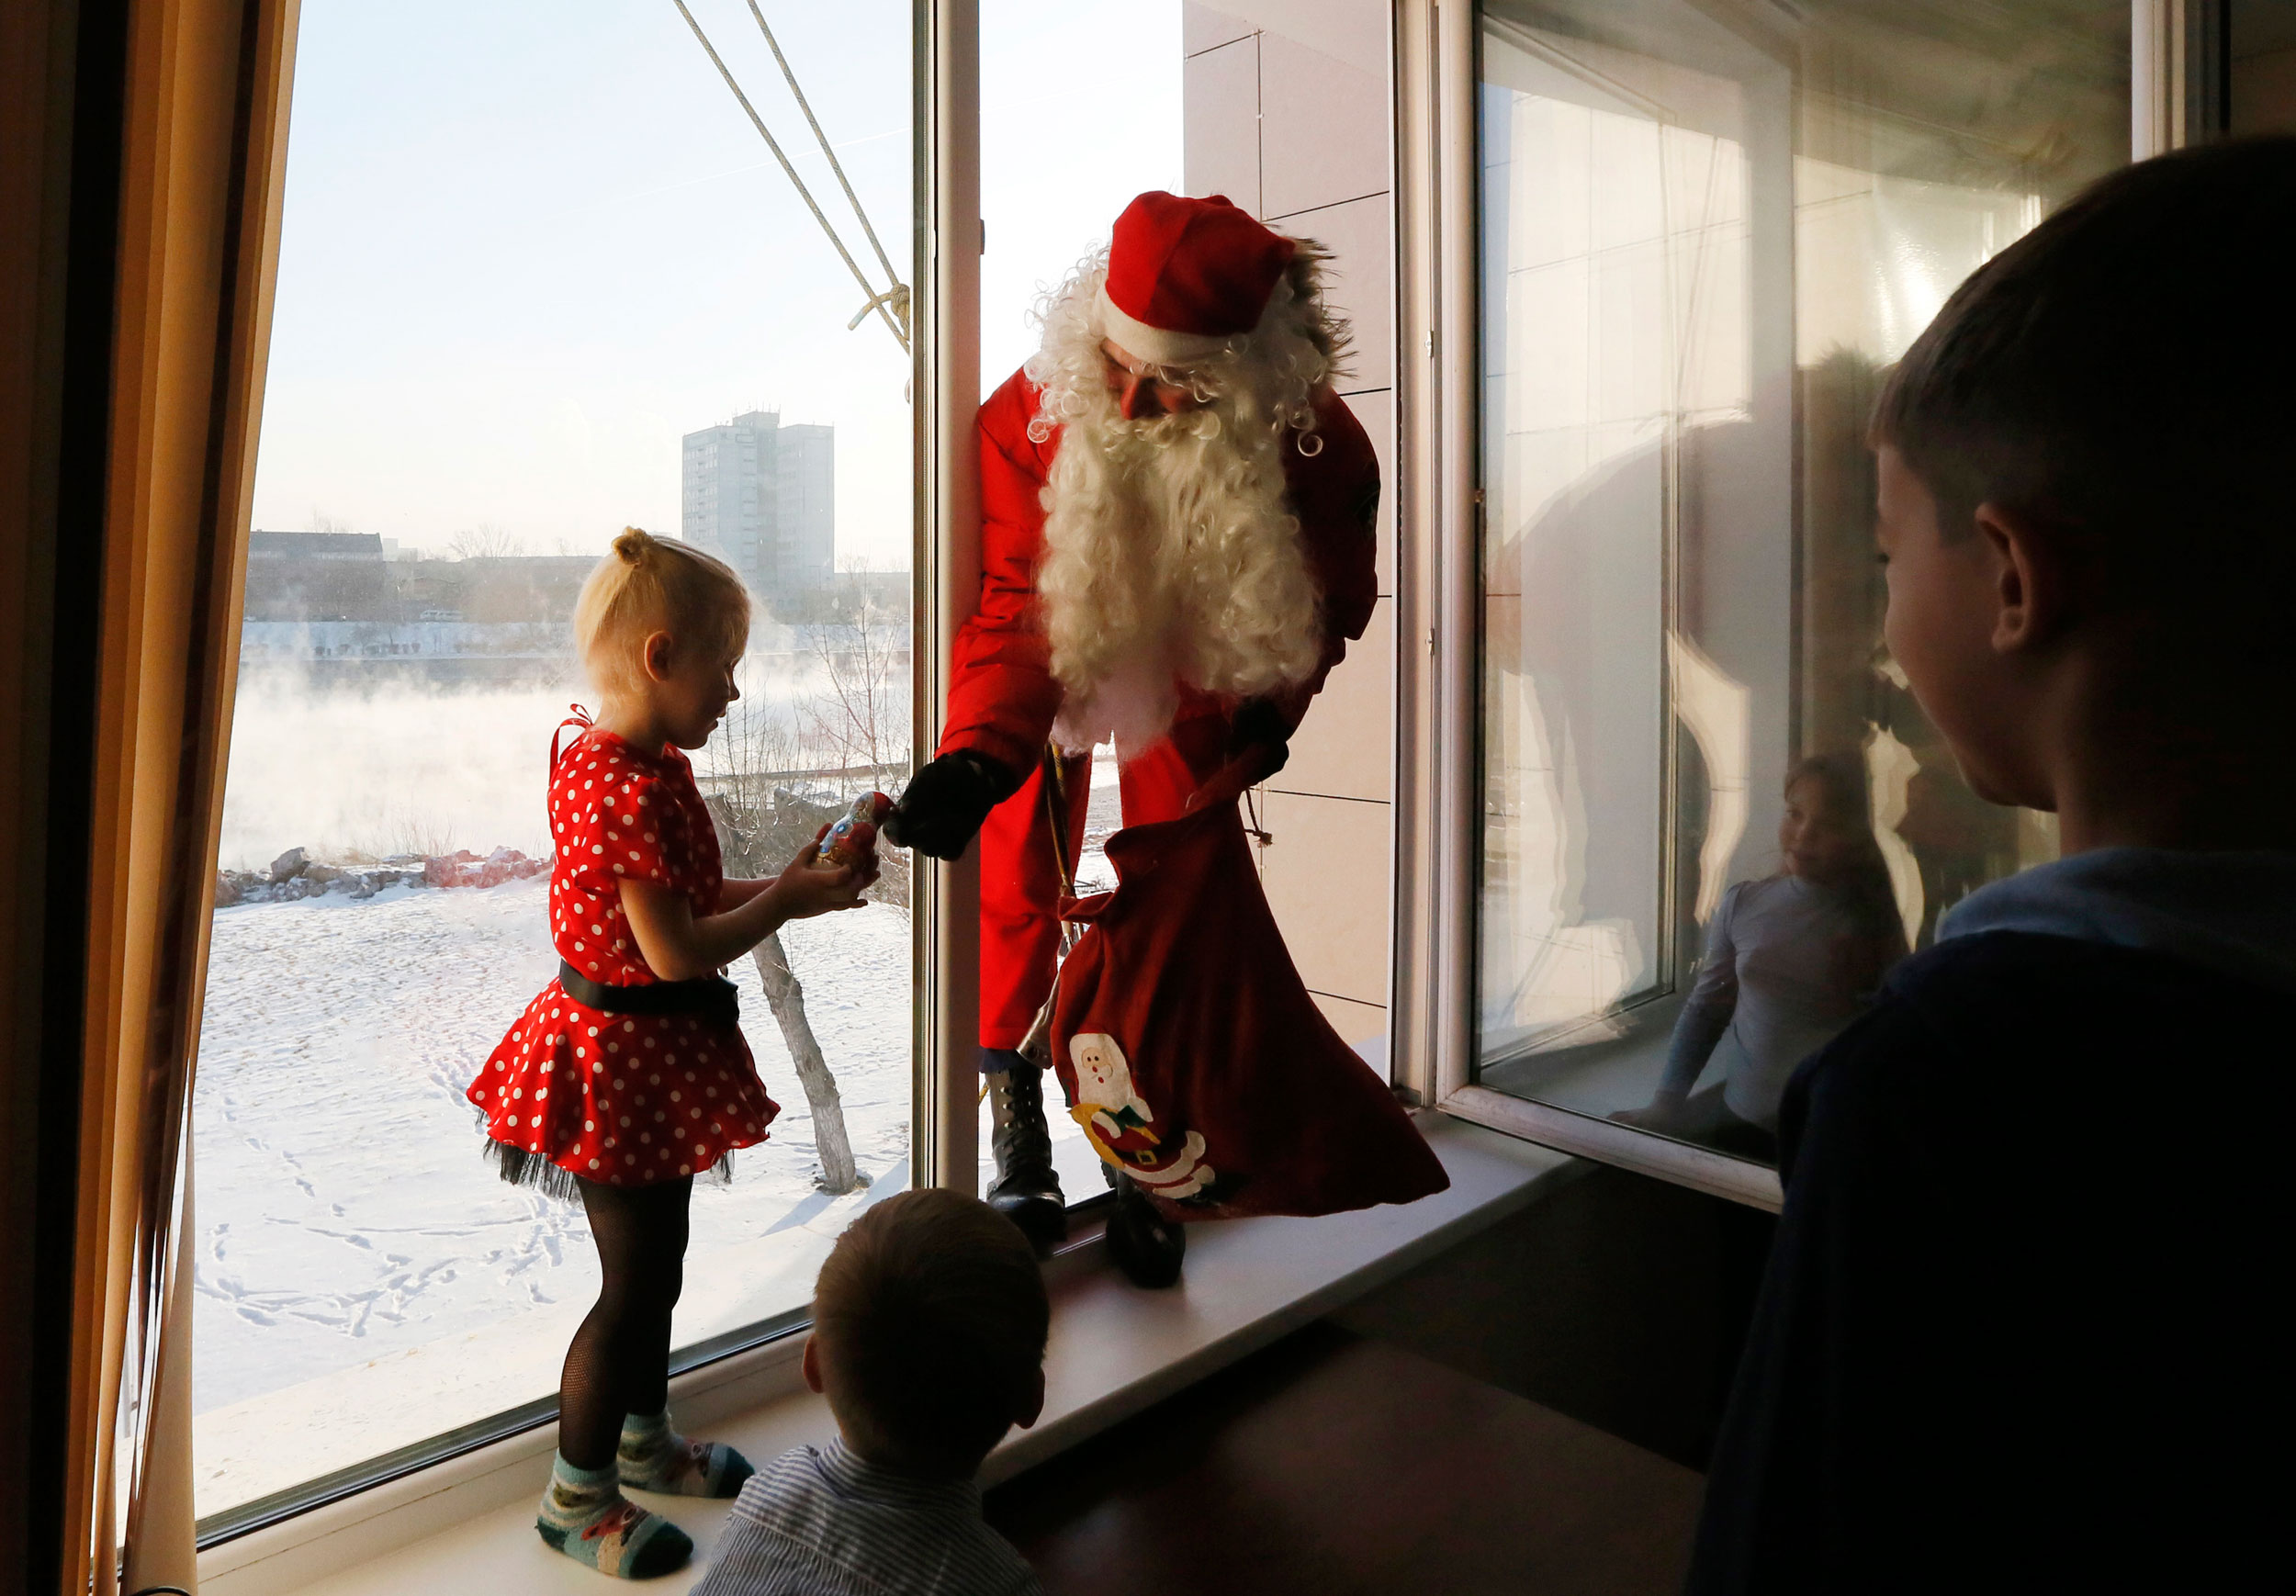 Alexei Trifonov, a member of the  rescuer  state regional service, dressed as Santa Claus, gives a sweet to a girl as he congrastulates employees of the Russian Emergencies Ministry and their children ahead of New Year and Christmas celebrations in Krasnoyarsk, Siberia on Dec. 24, 2014.